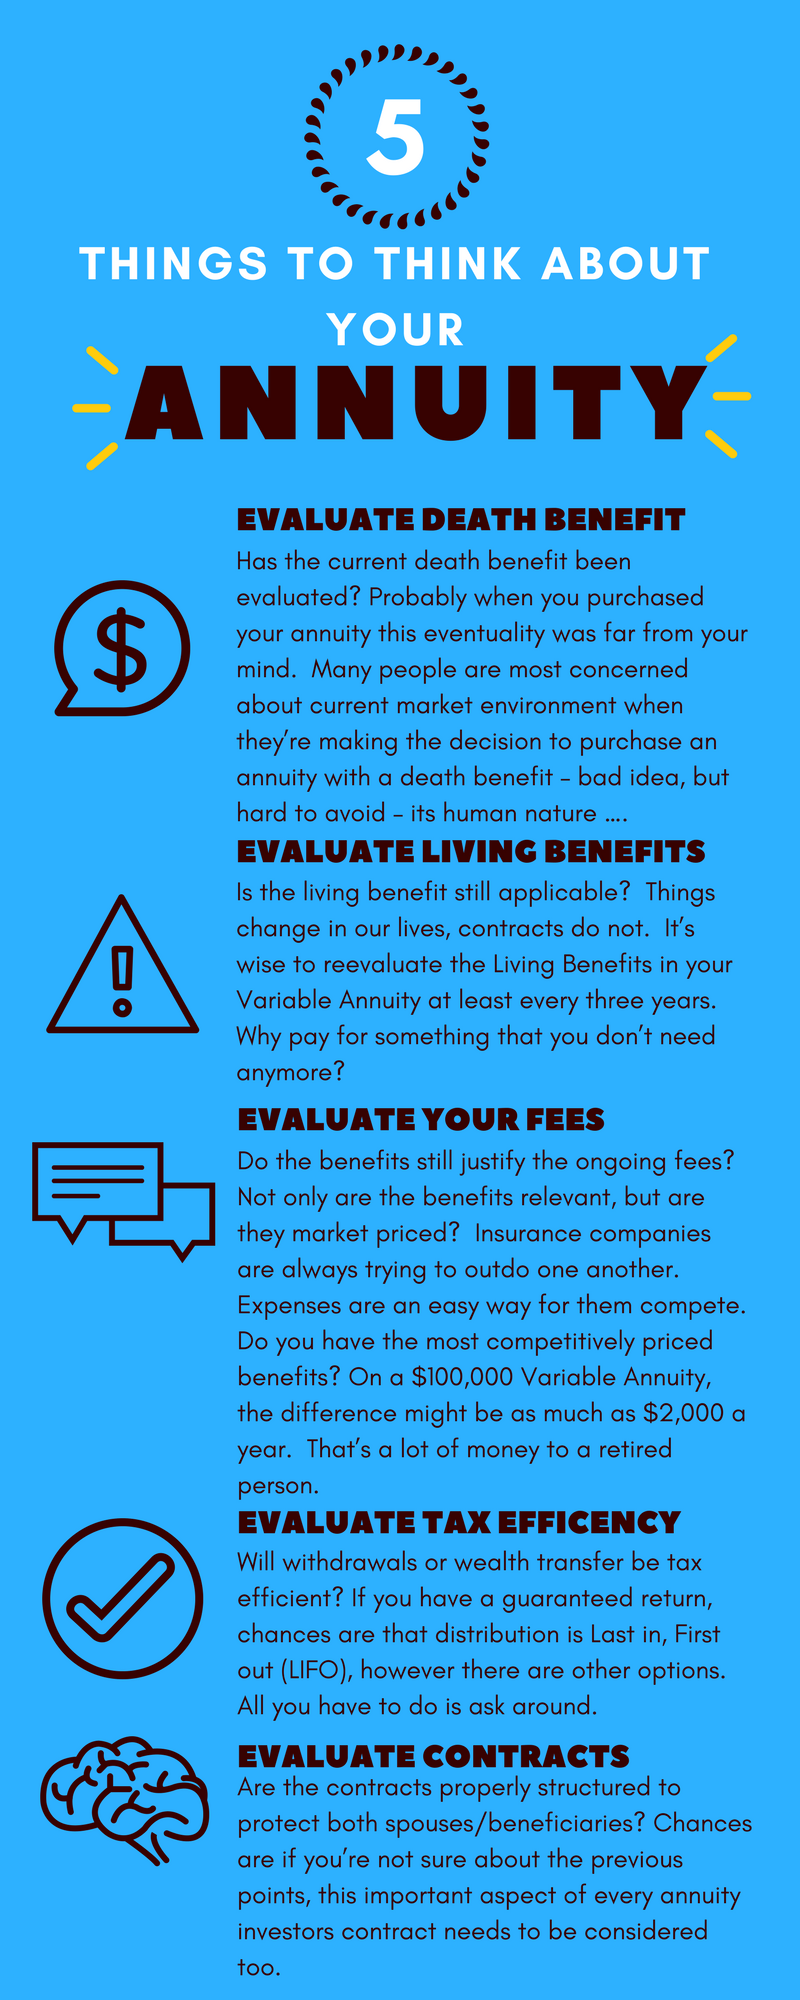 evalulate your variable annuity for improved savings